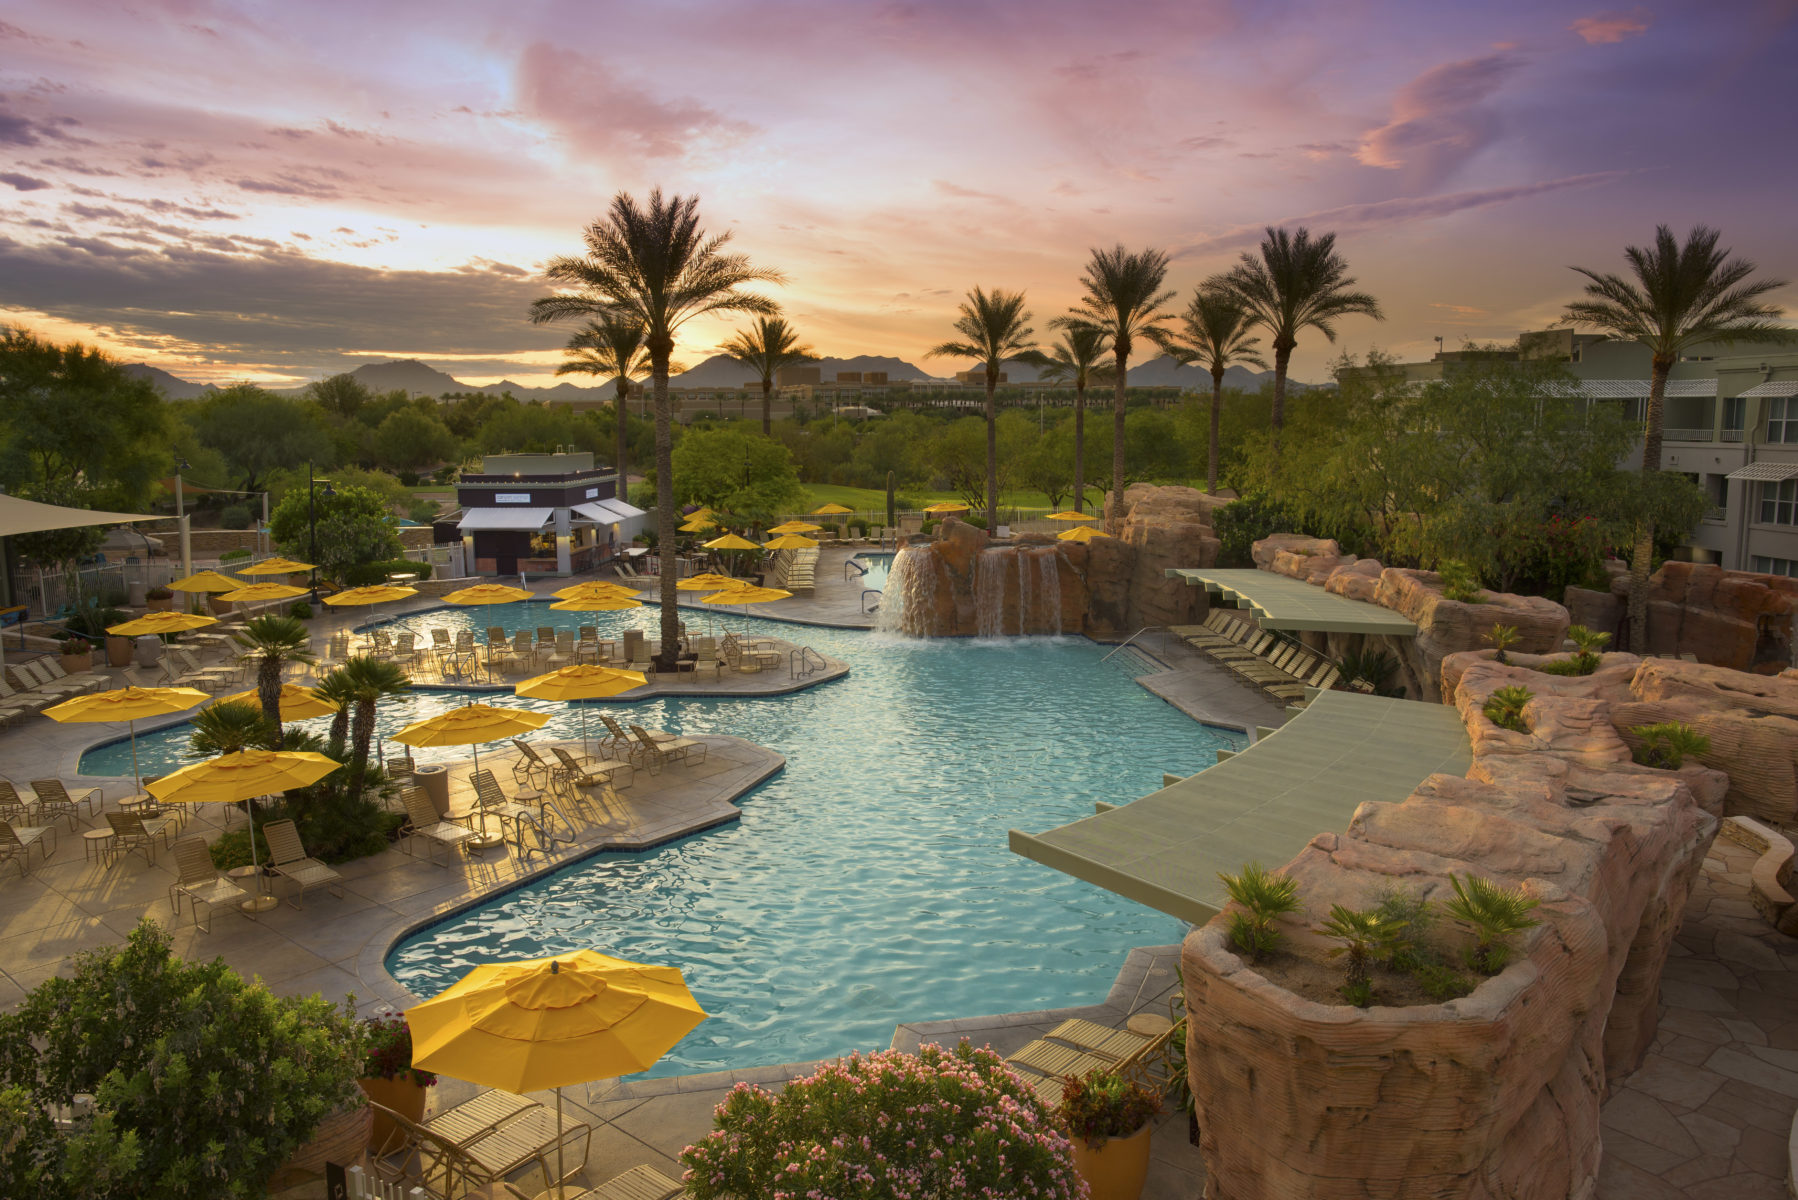 Marriotts Canyon Villas A Review by a Marriott Vacation